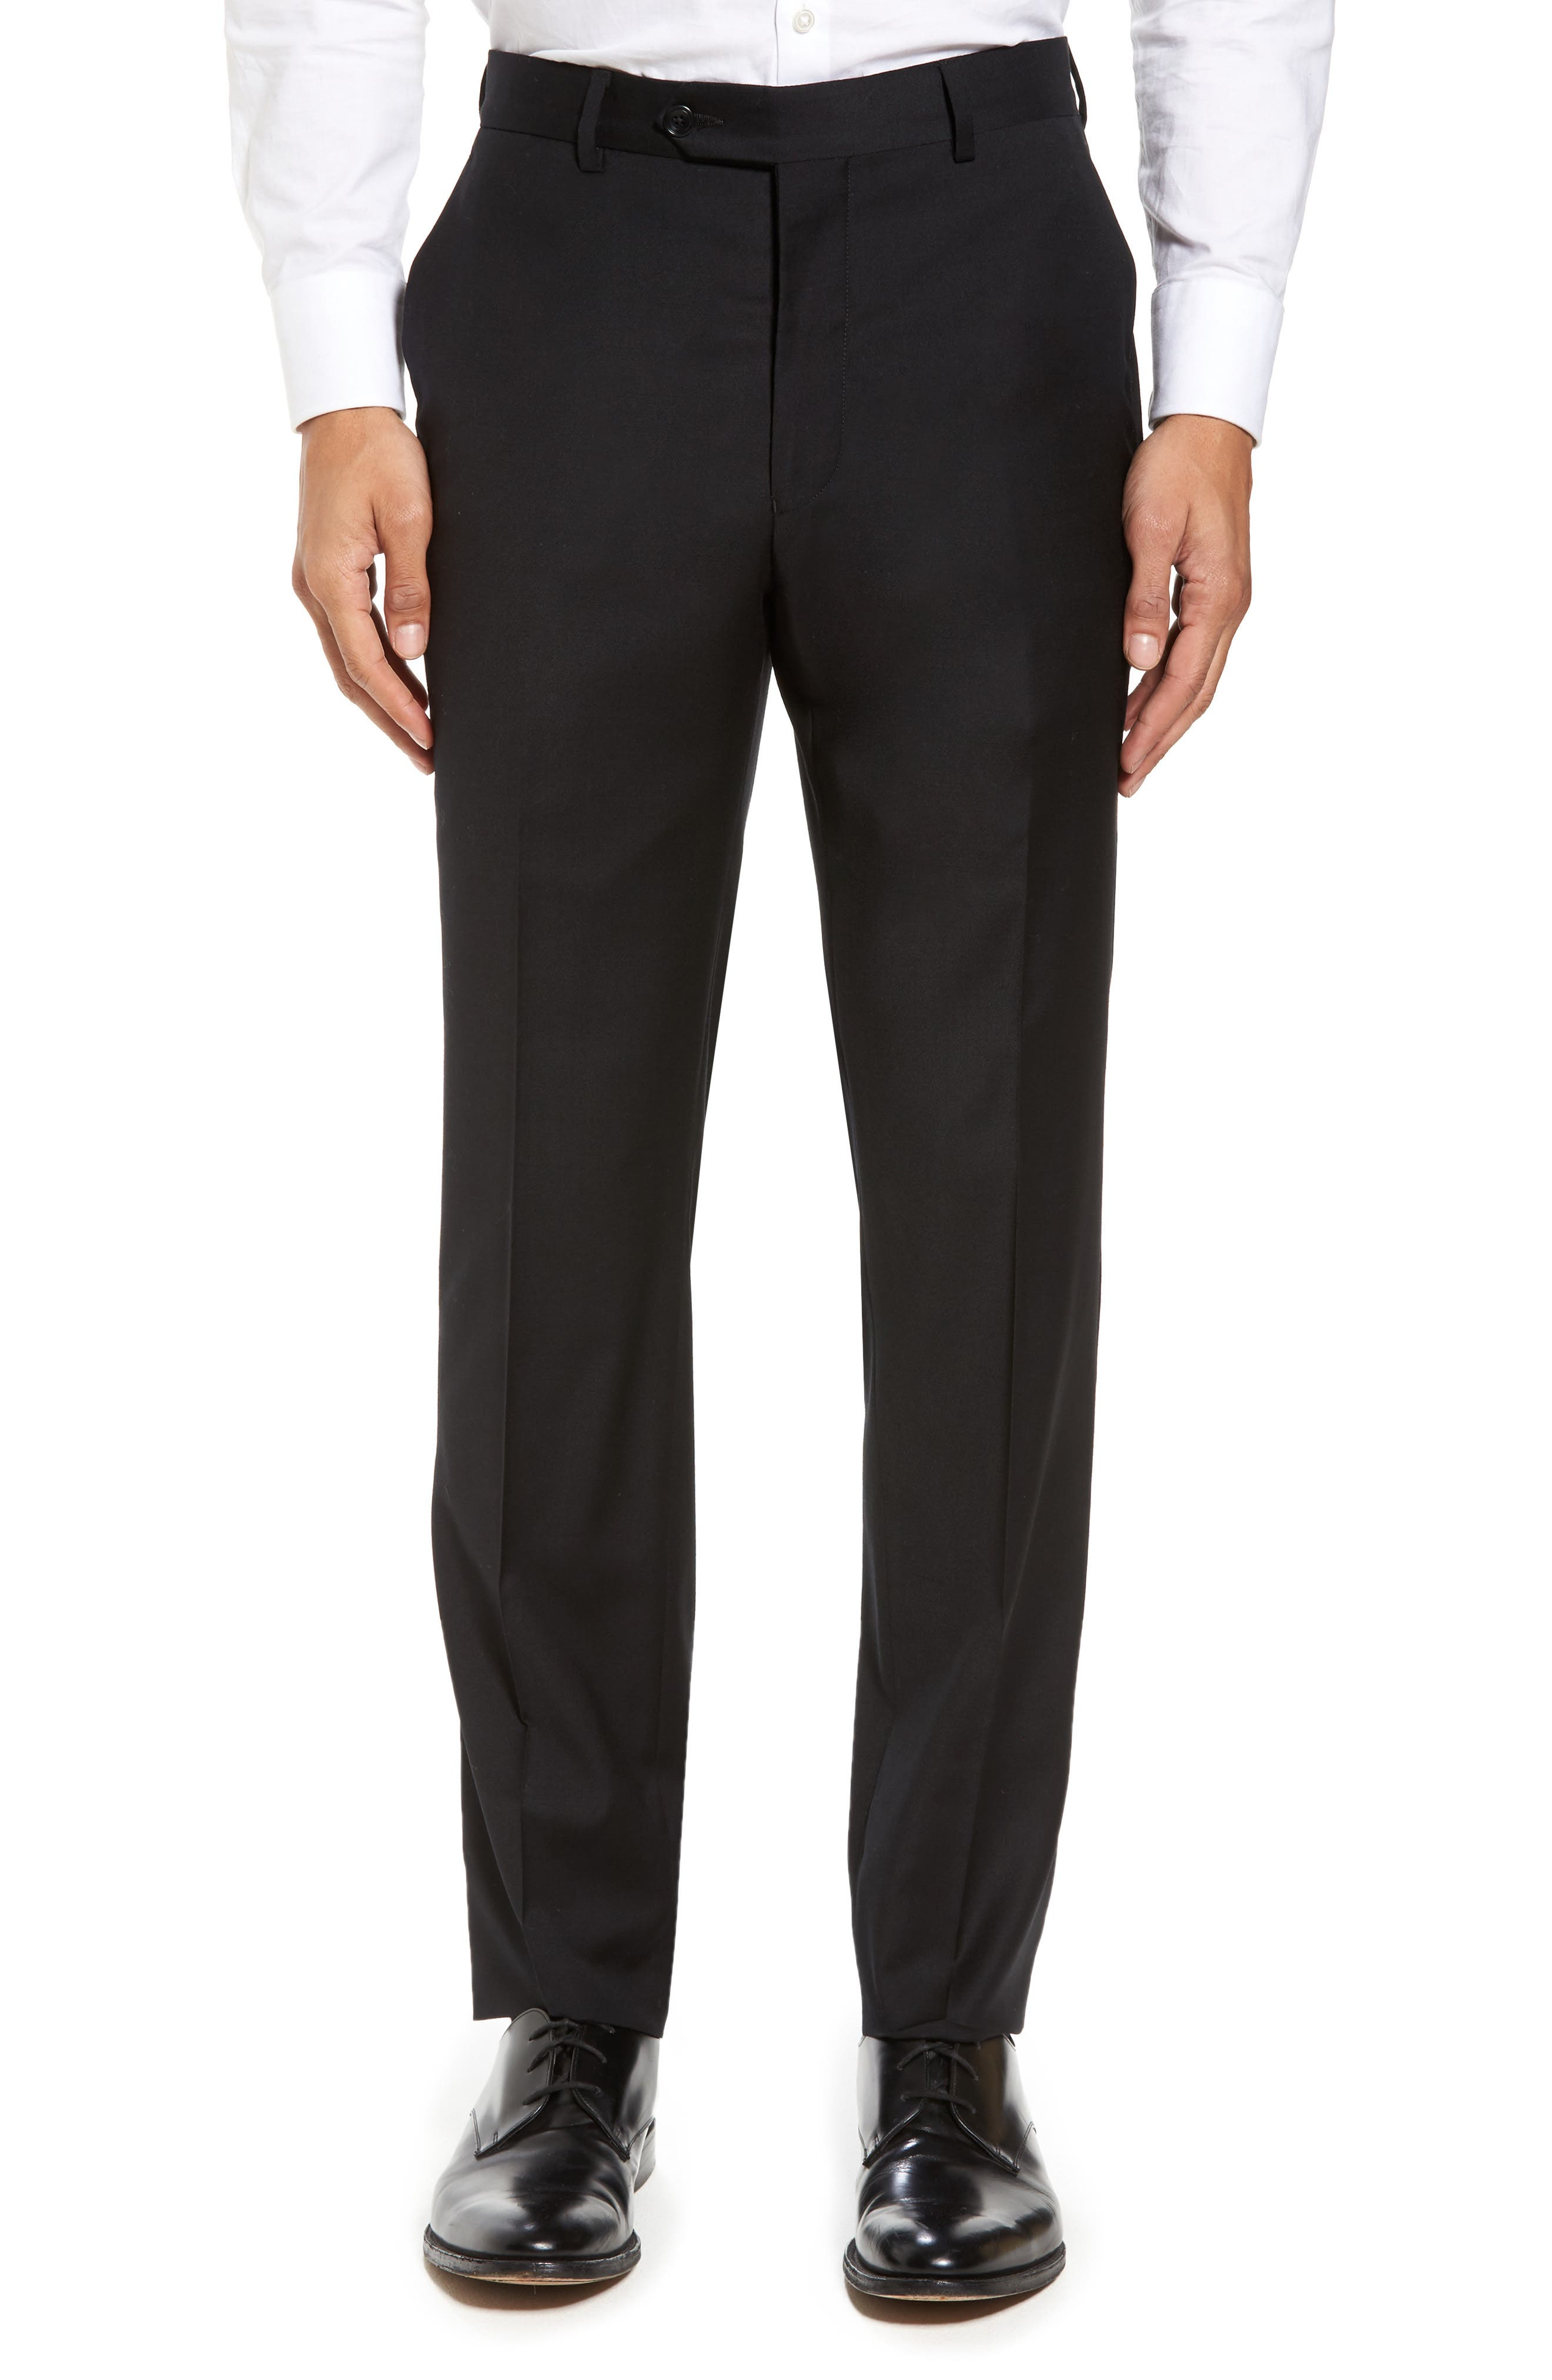 Flat Front Stretch Solid Wool Trousers,                             Main thumbnail 1, color,                             Black